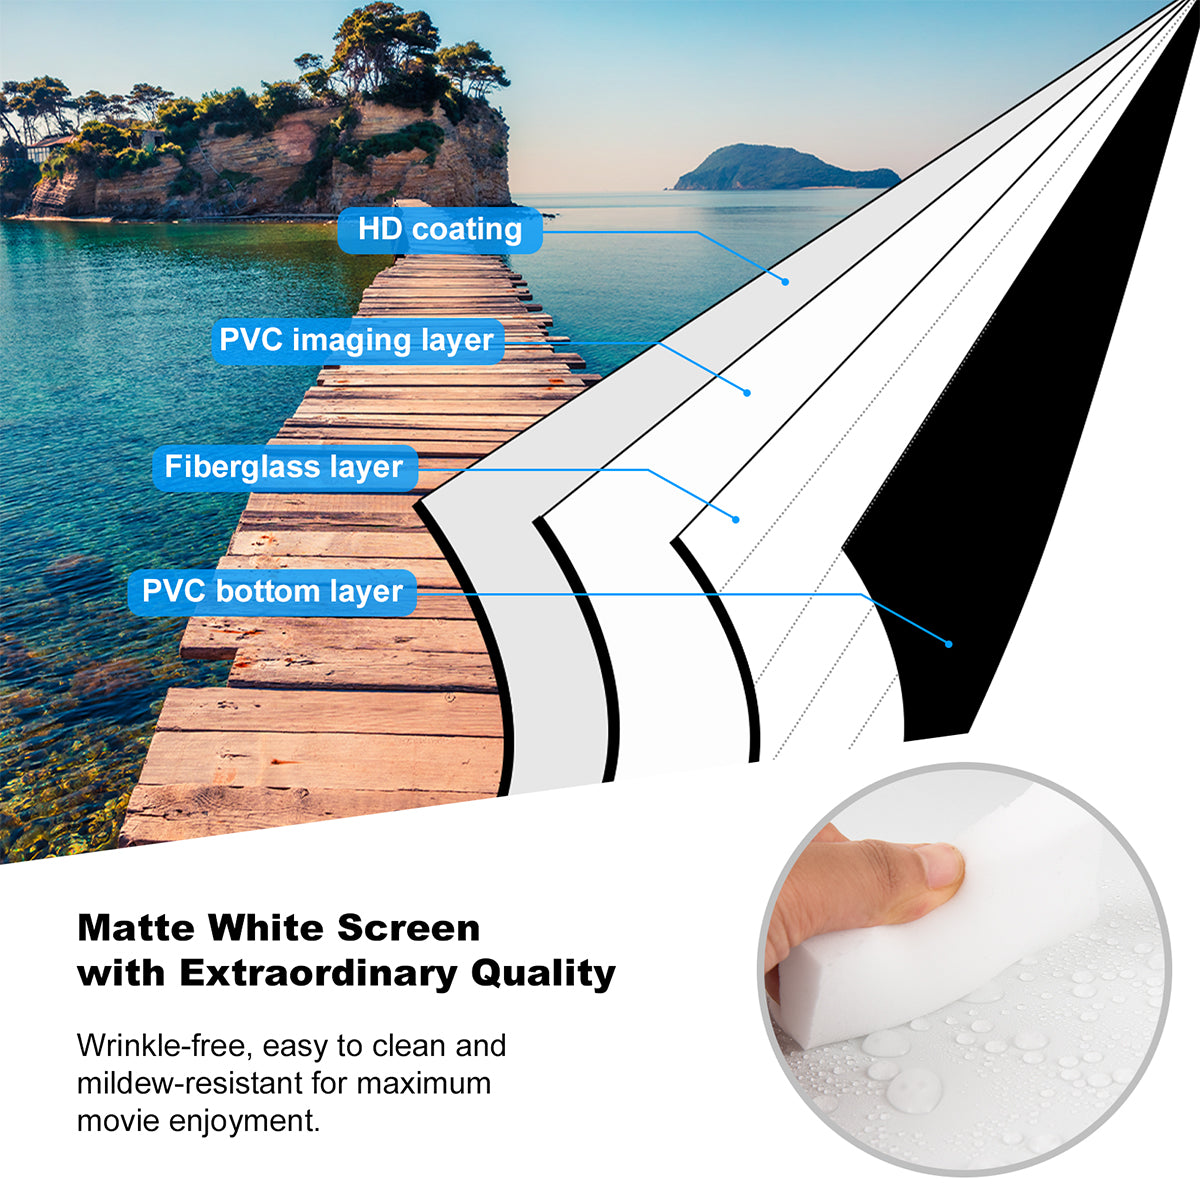 meauro projector screen